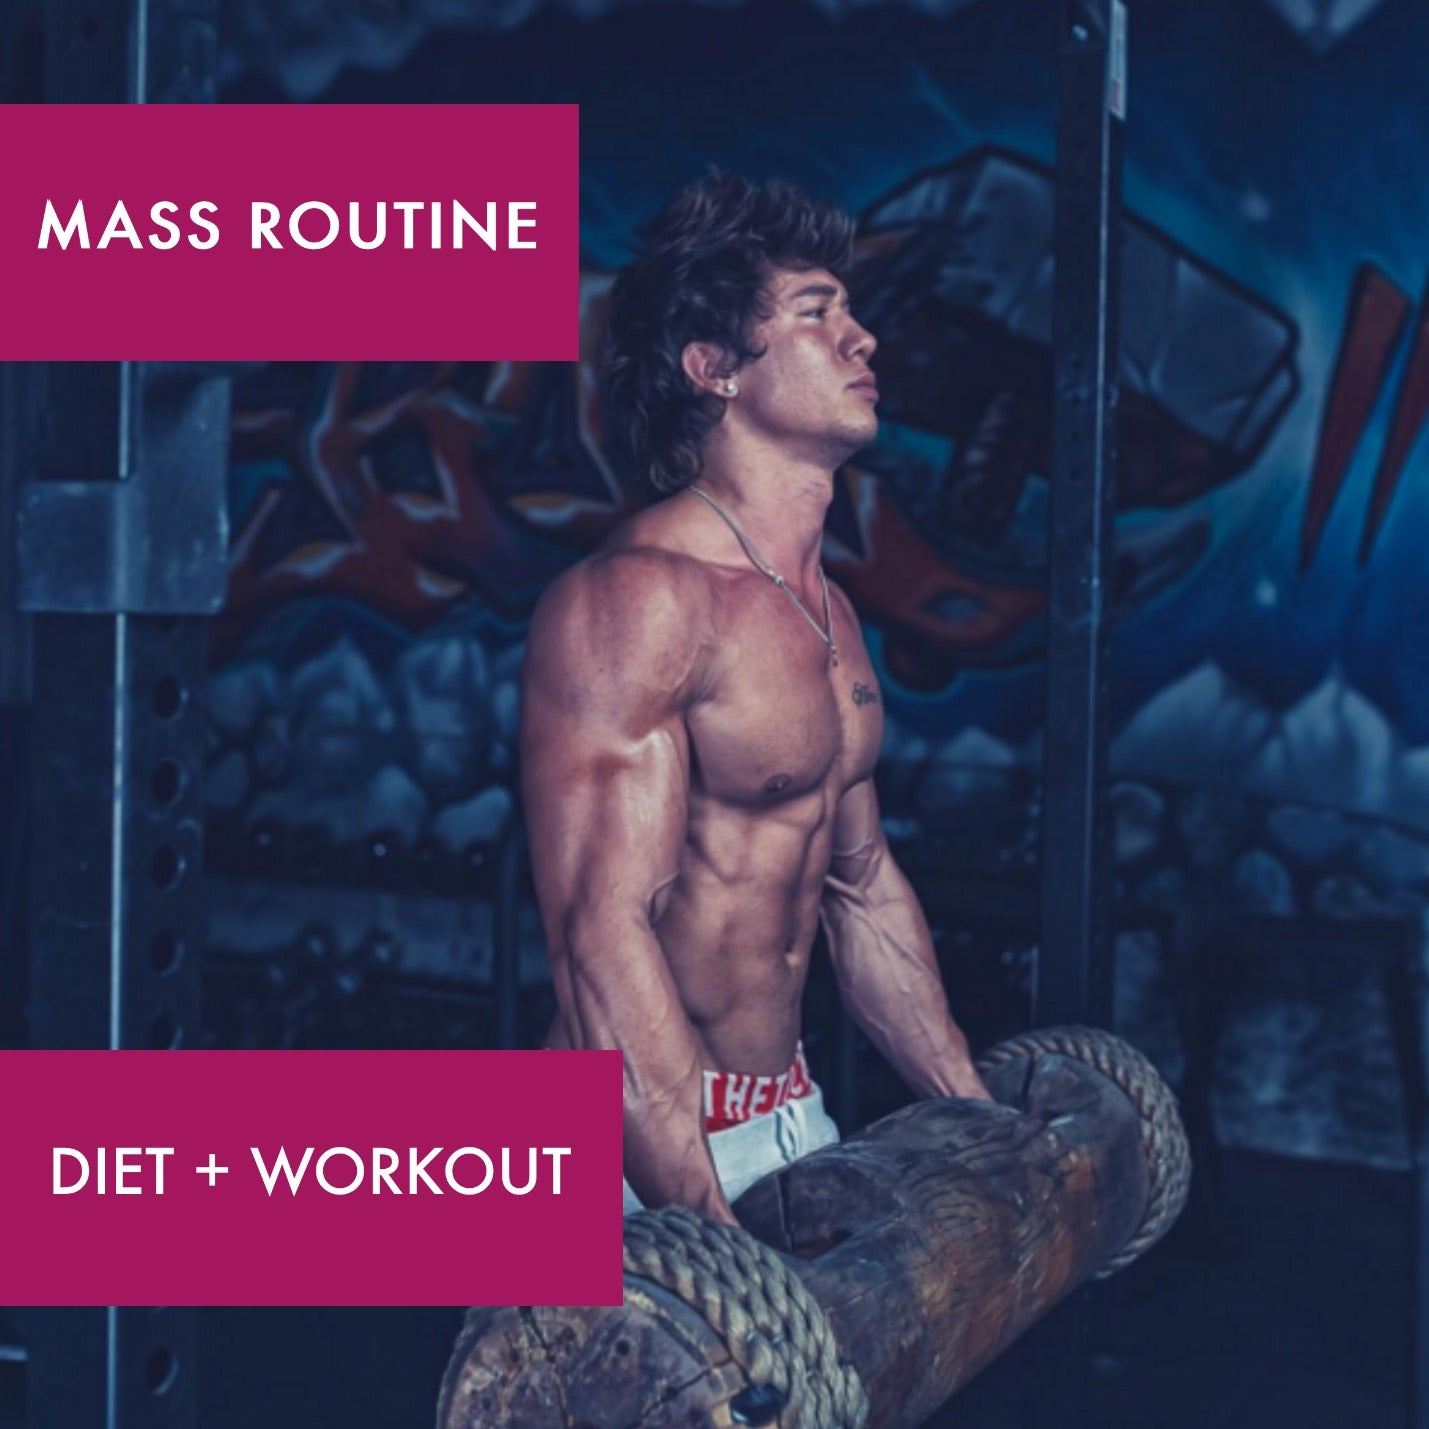 MASS (DIET + WORKOUT)